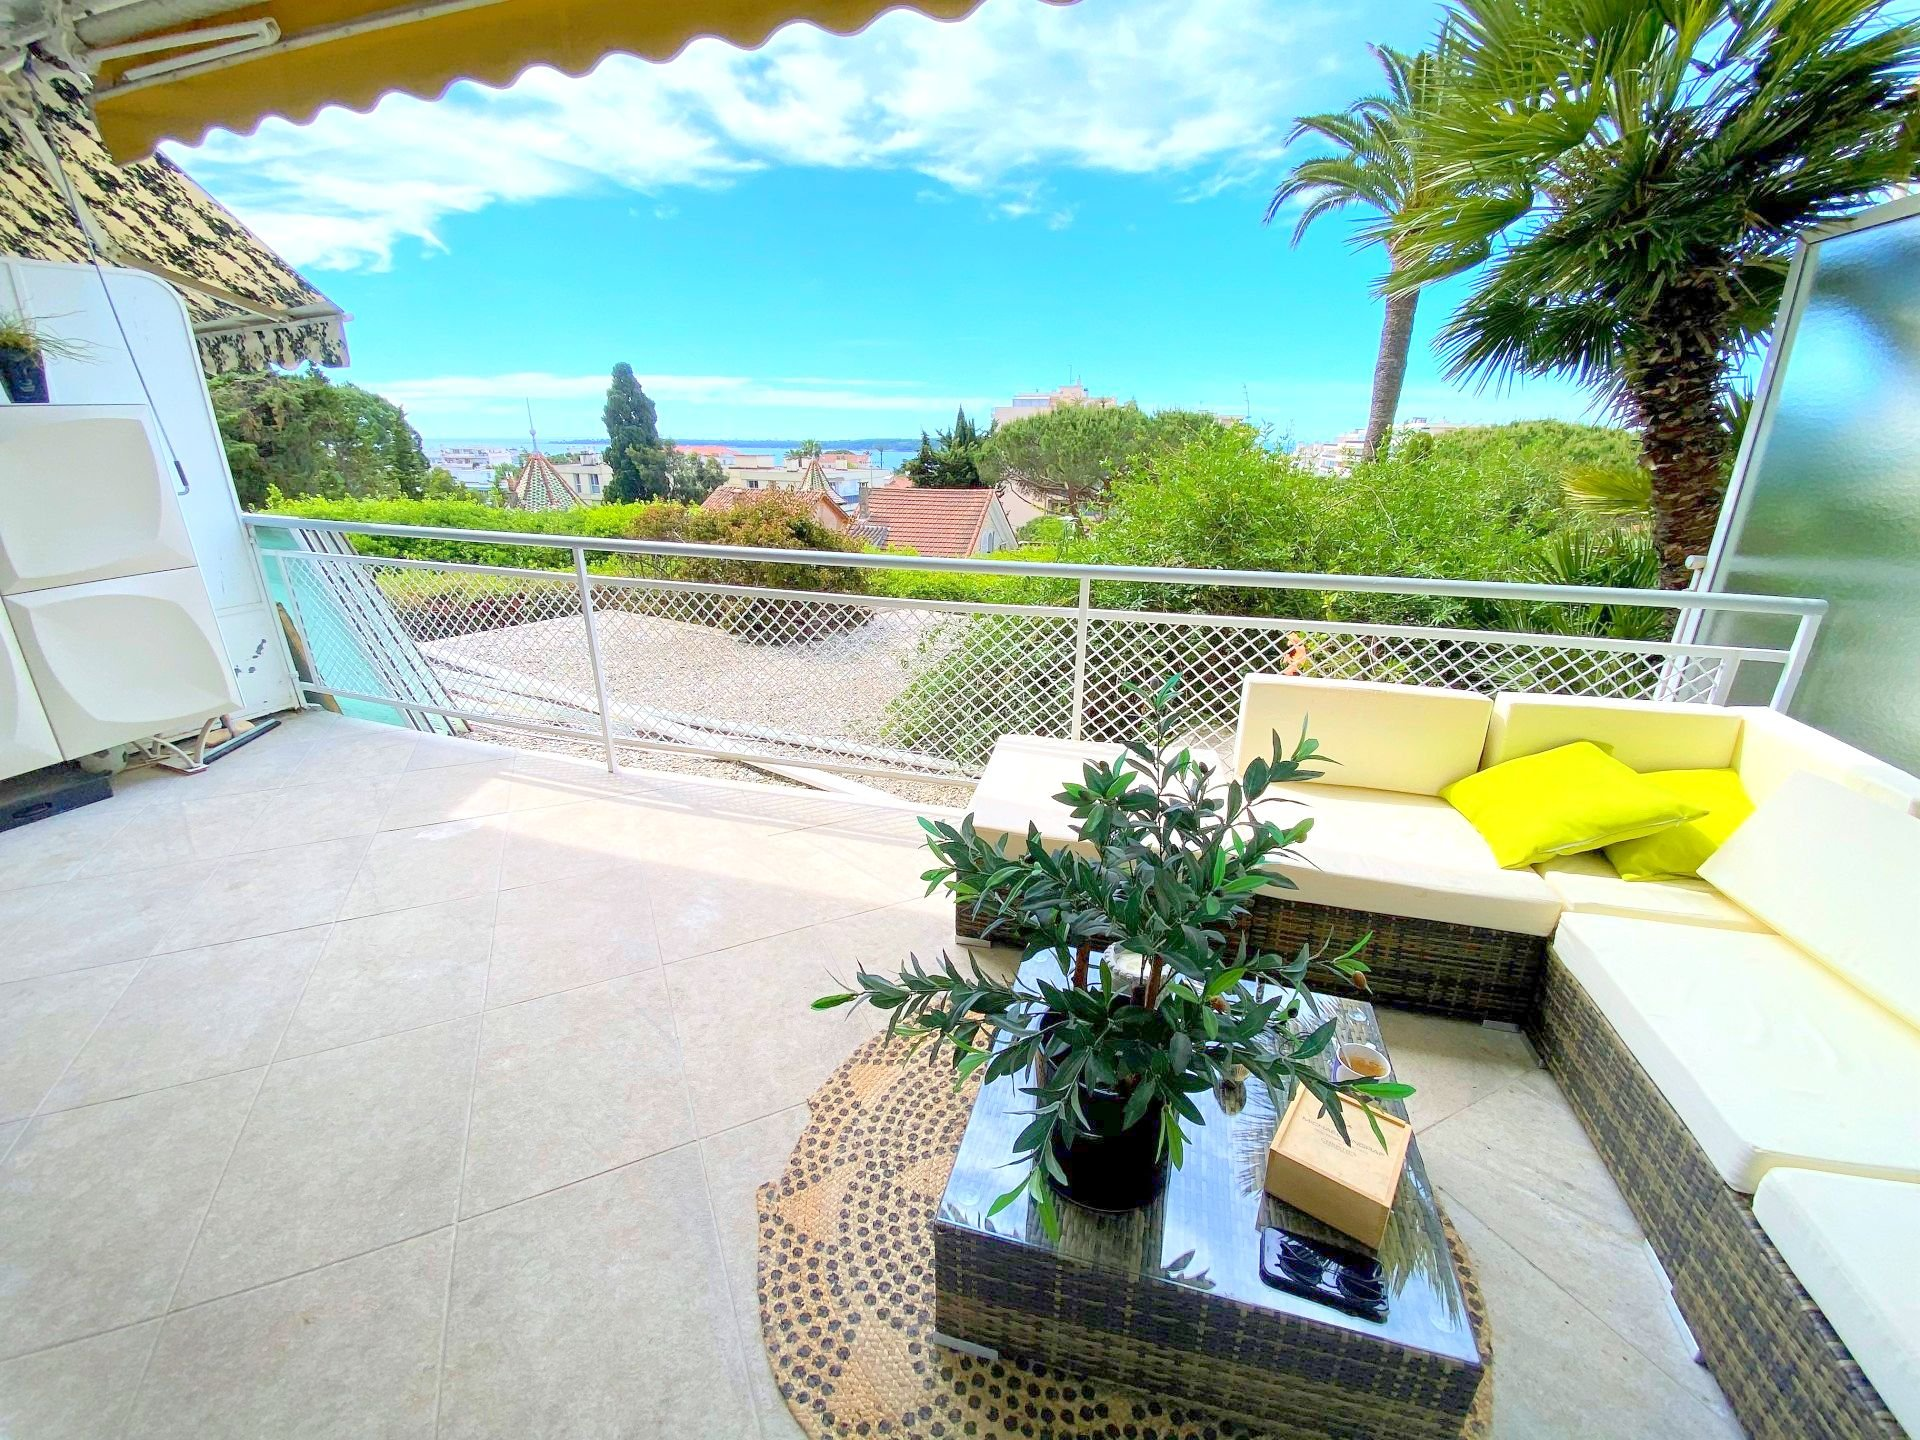 CANNES SALE FLAT 2 ROOMS LARGE TERRACE SEA VIEW